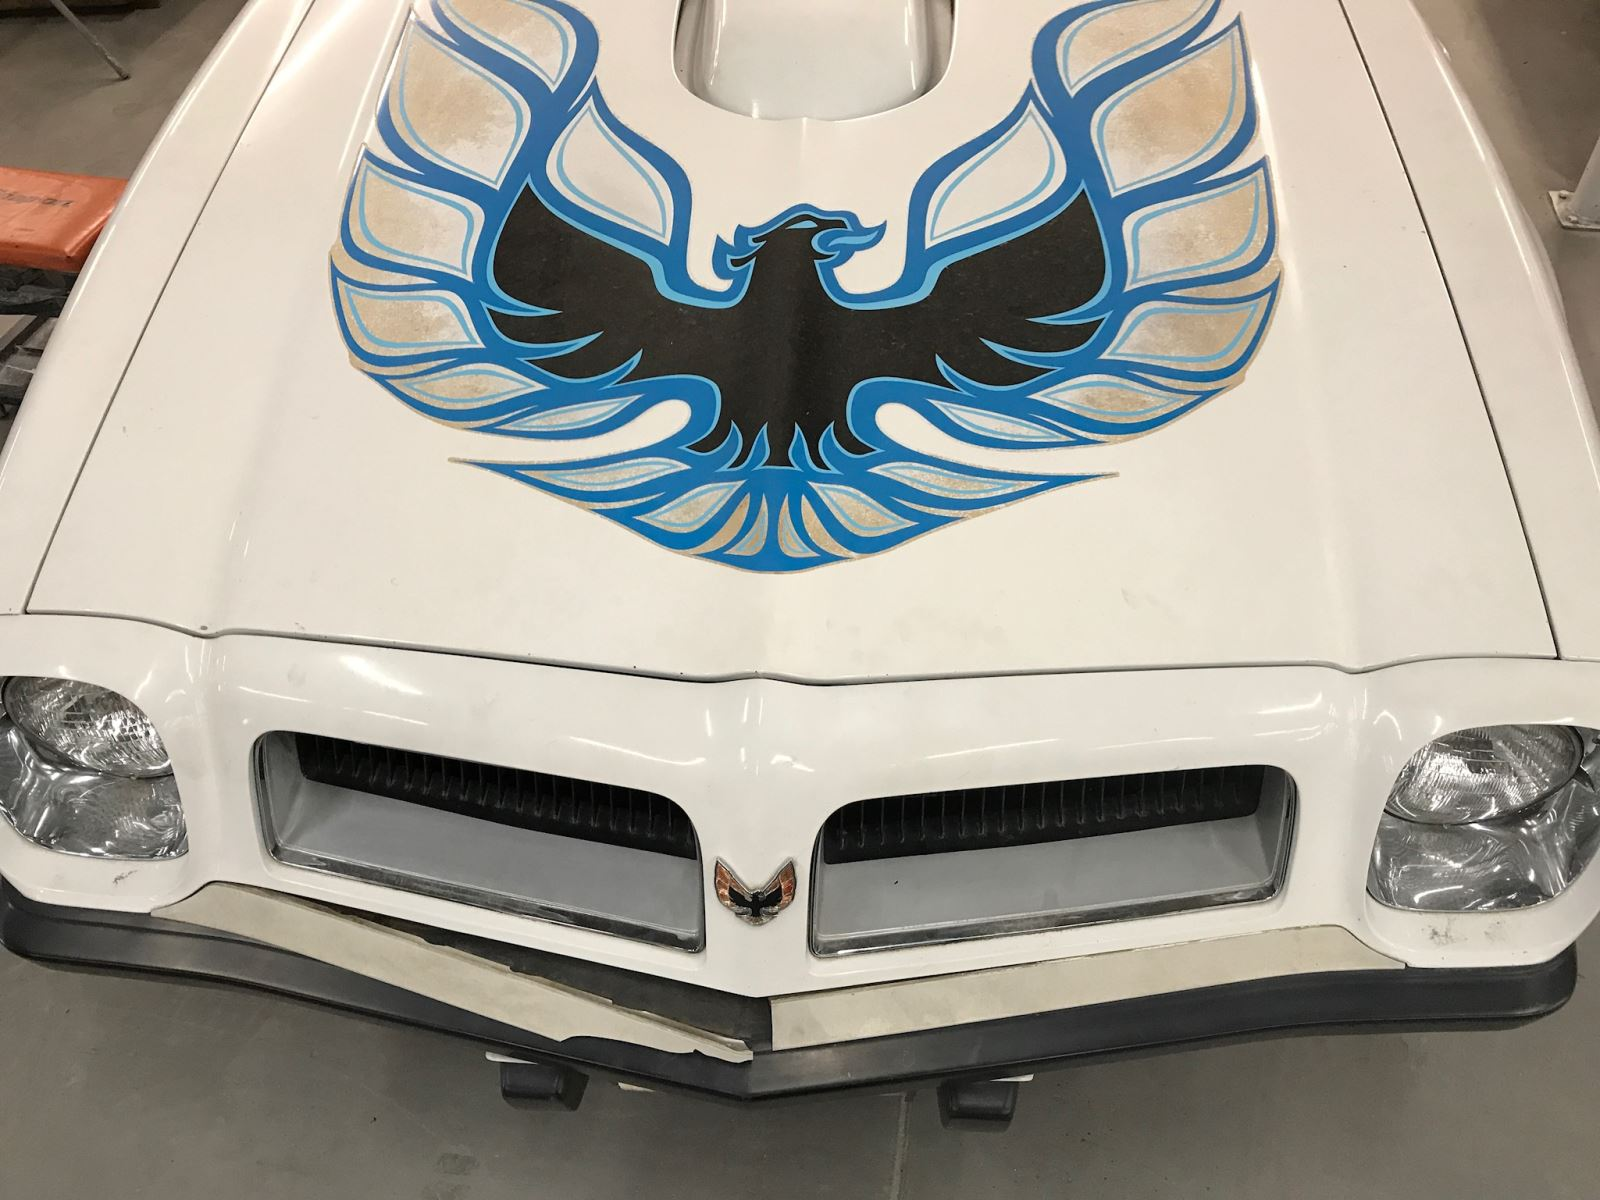 1974 Pontiac Trans Am | Wasatch Customs - image #3